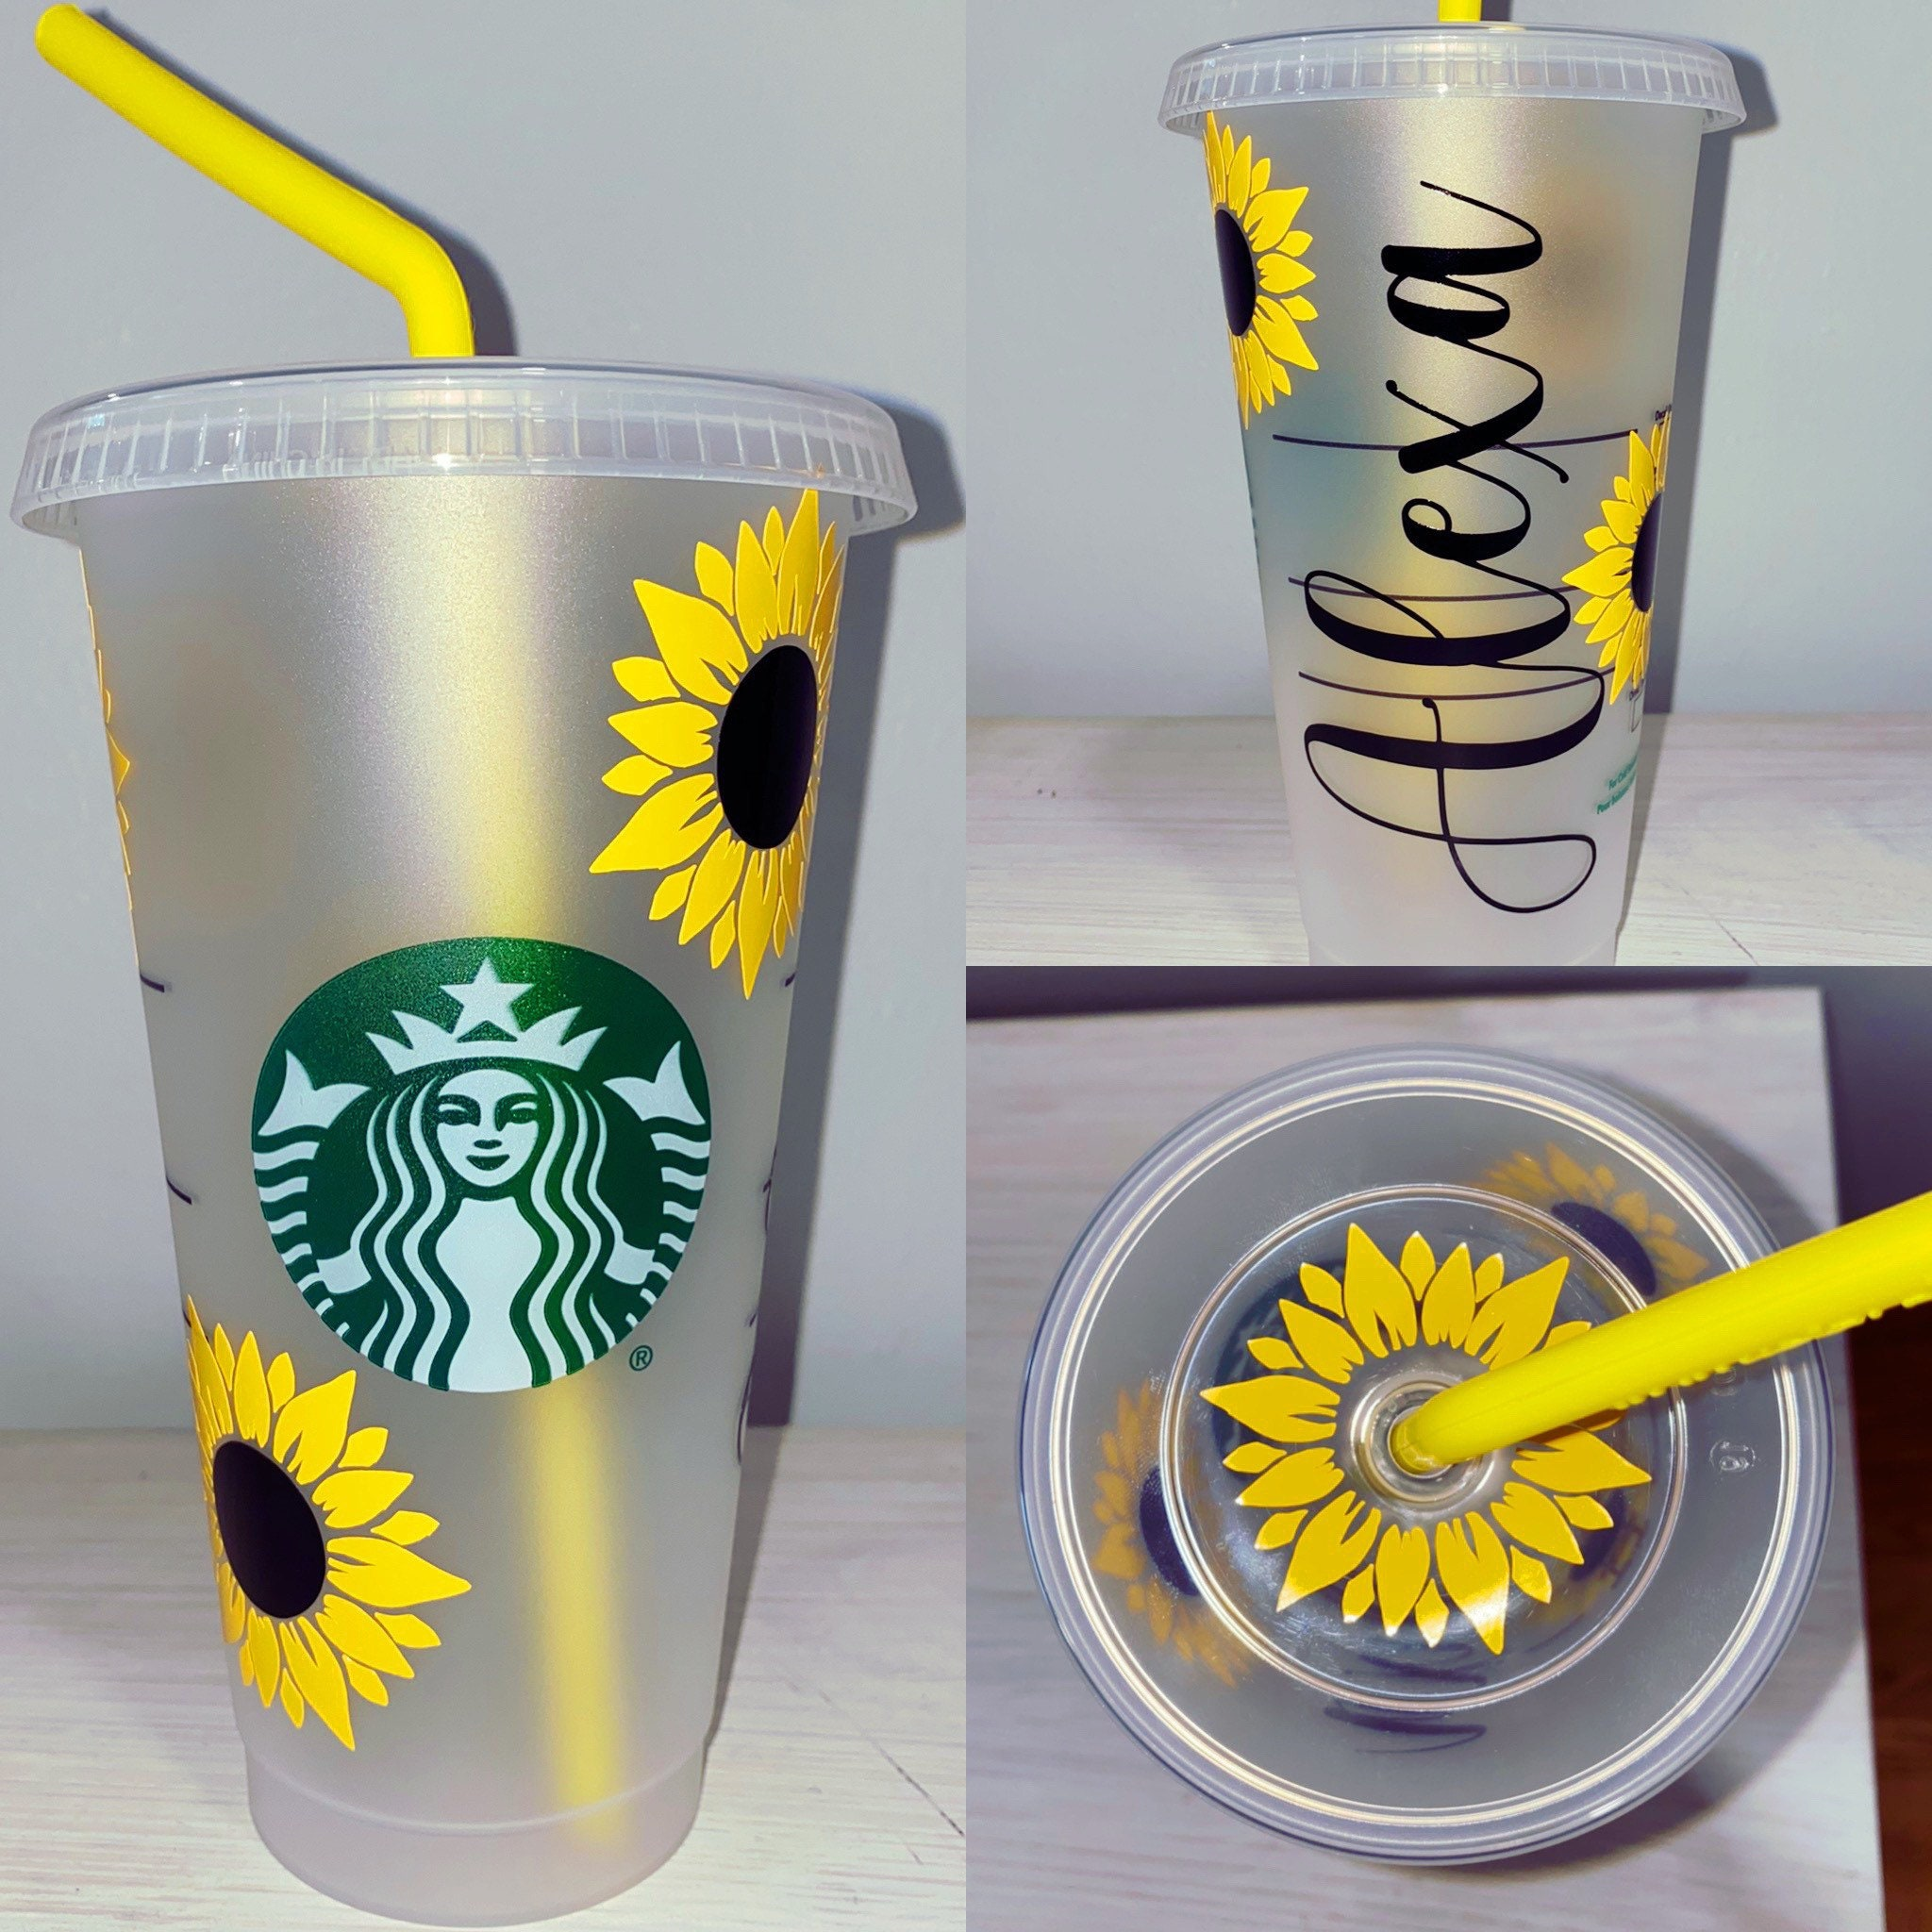 starbucks reusable cold cup gift for friend Venti cold cup personalized tumbler Sunflower Starbucks Cold Cup reusable venti cold cup